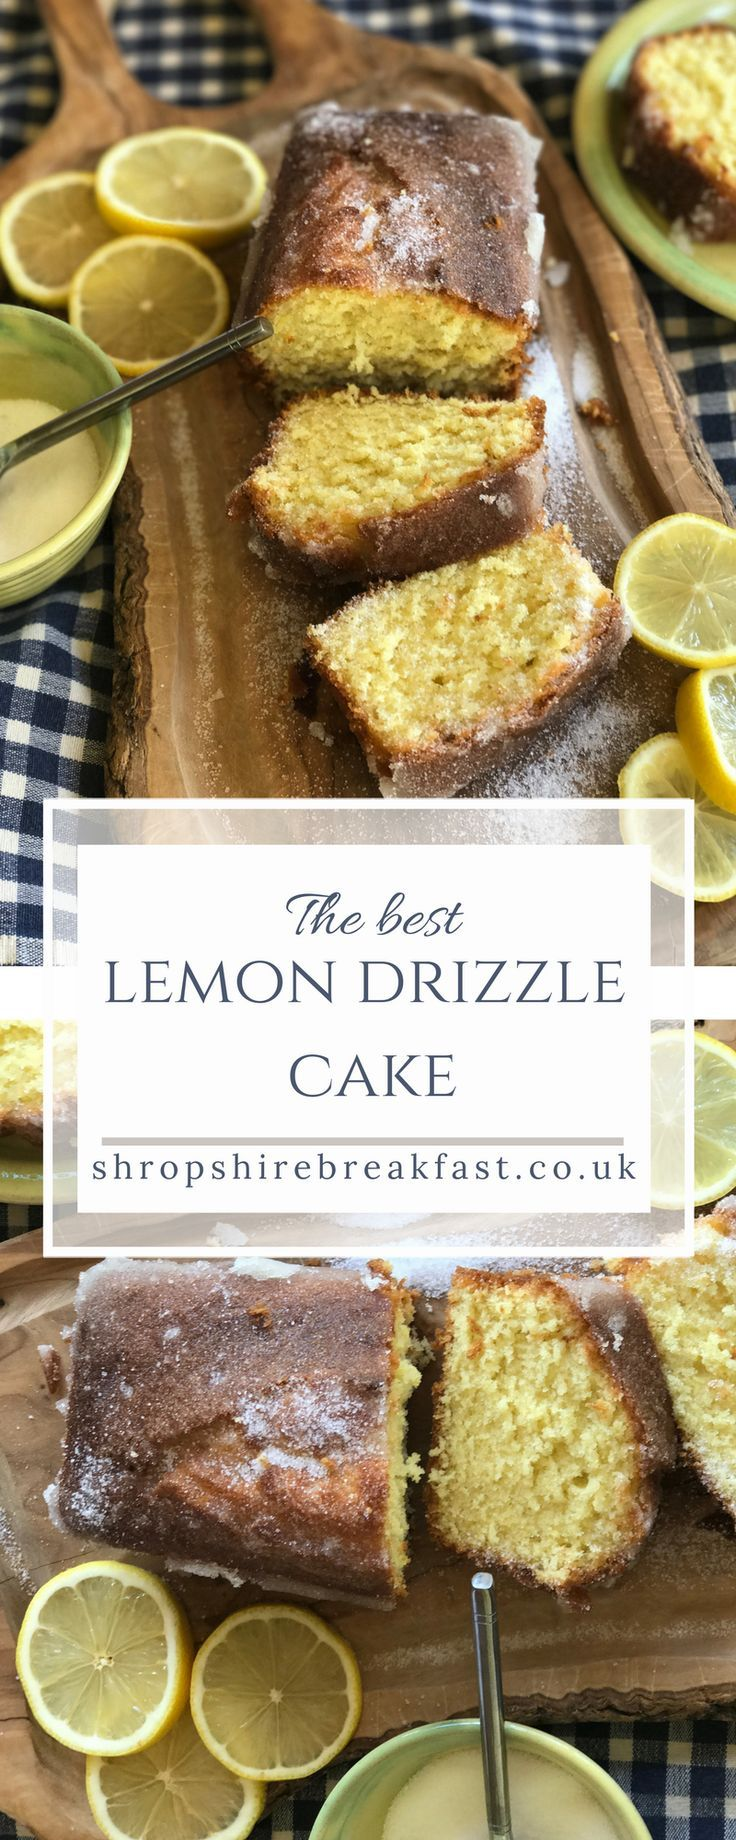 The best easy lemon drizzle cake recipe | a moist cake based on a recipe by Mary Berry | all my B&B guests love it - try baking it this weekend #cake #recipe